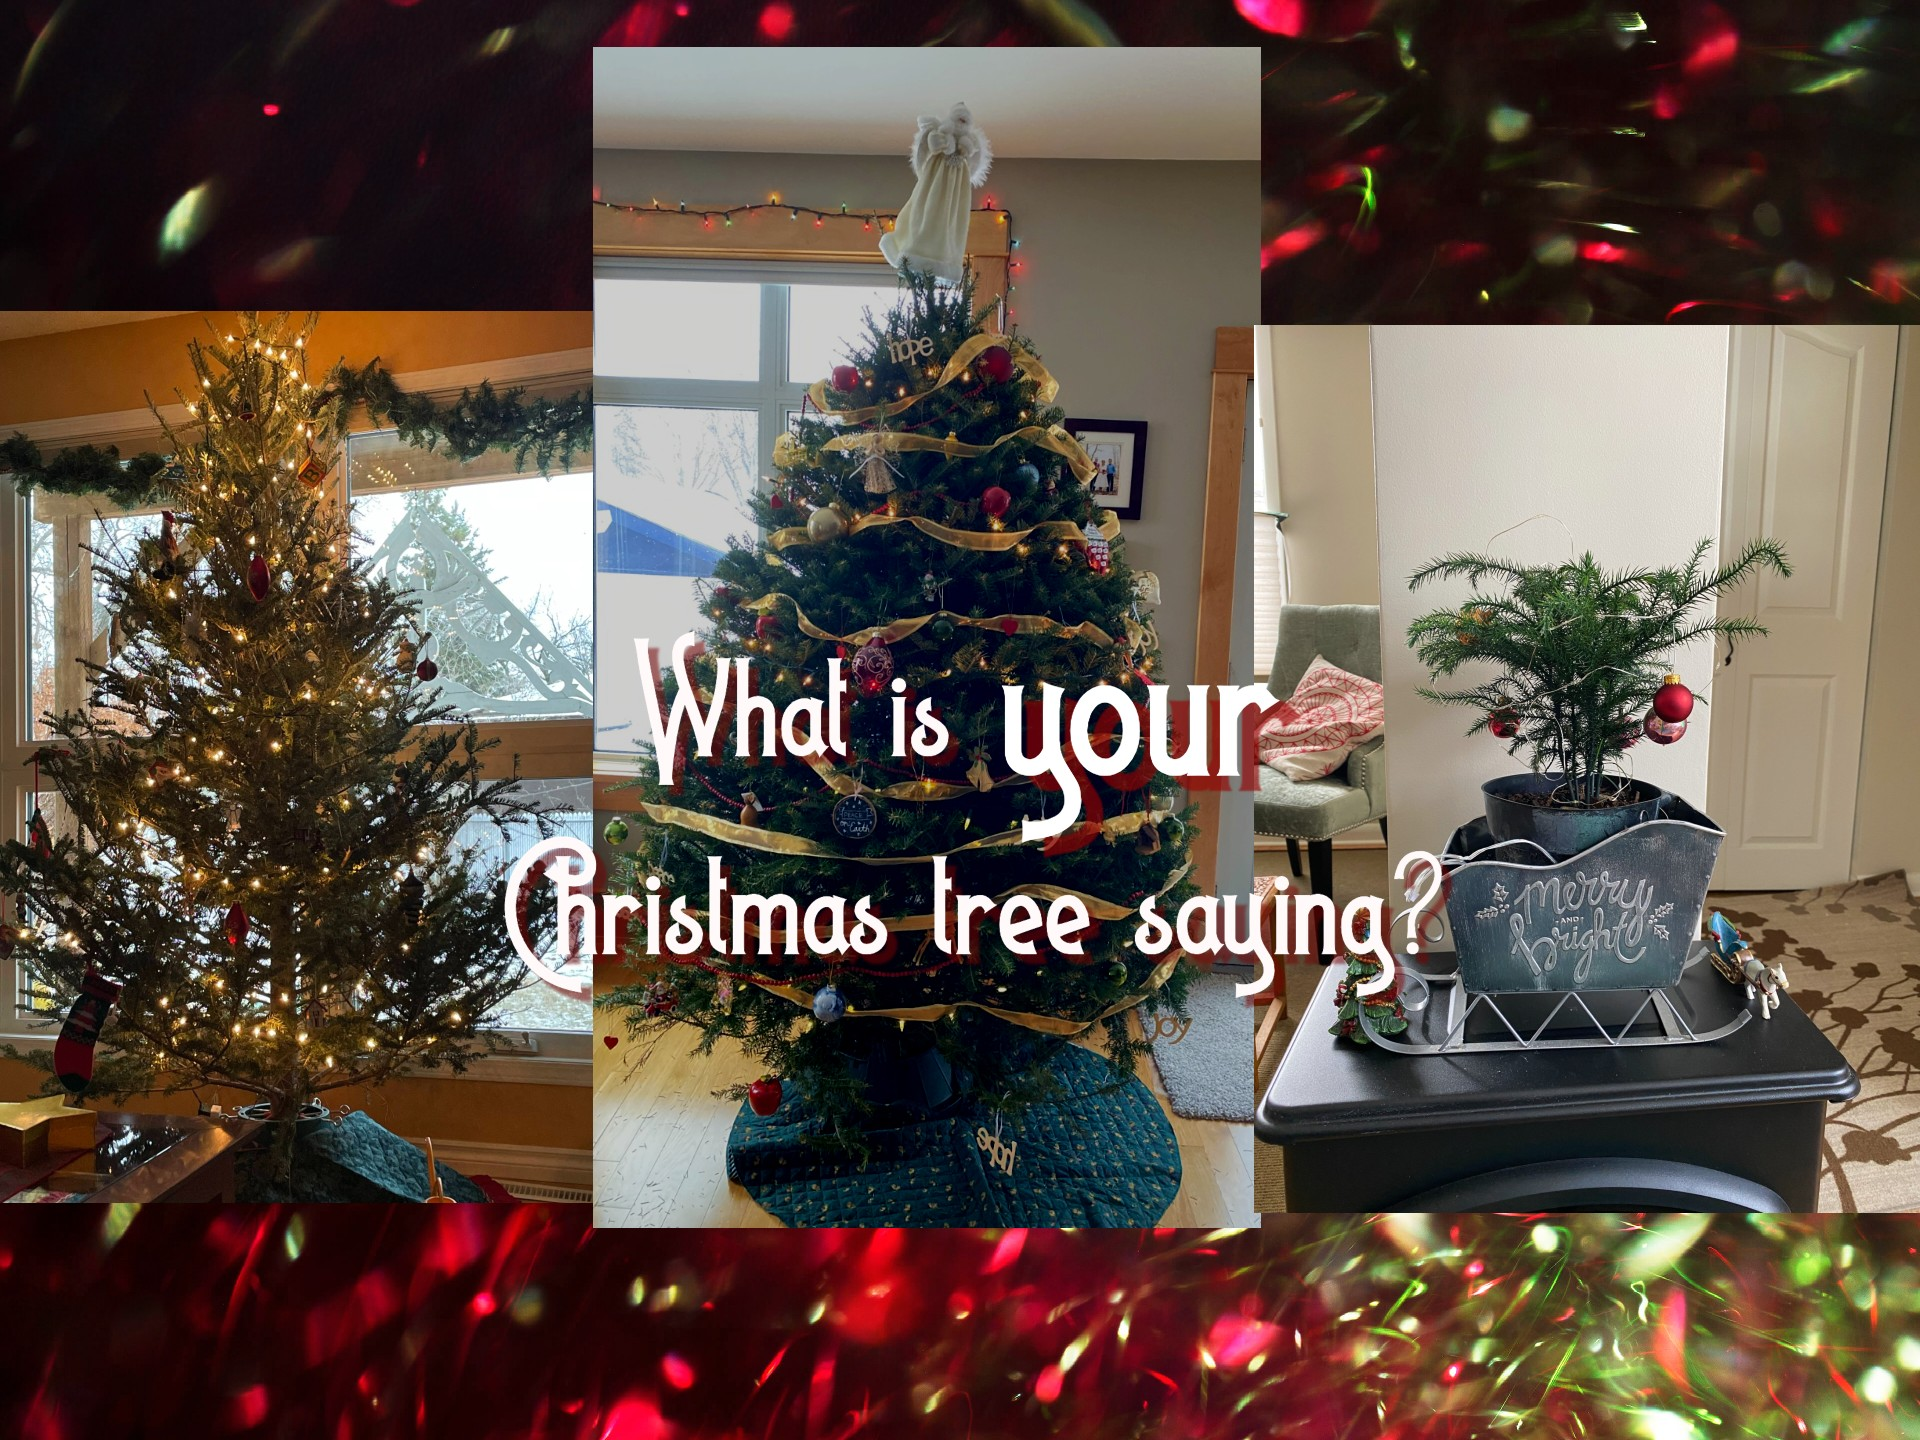 What is your Christmas tree saying